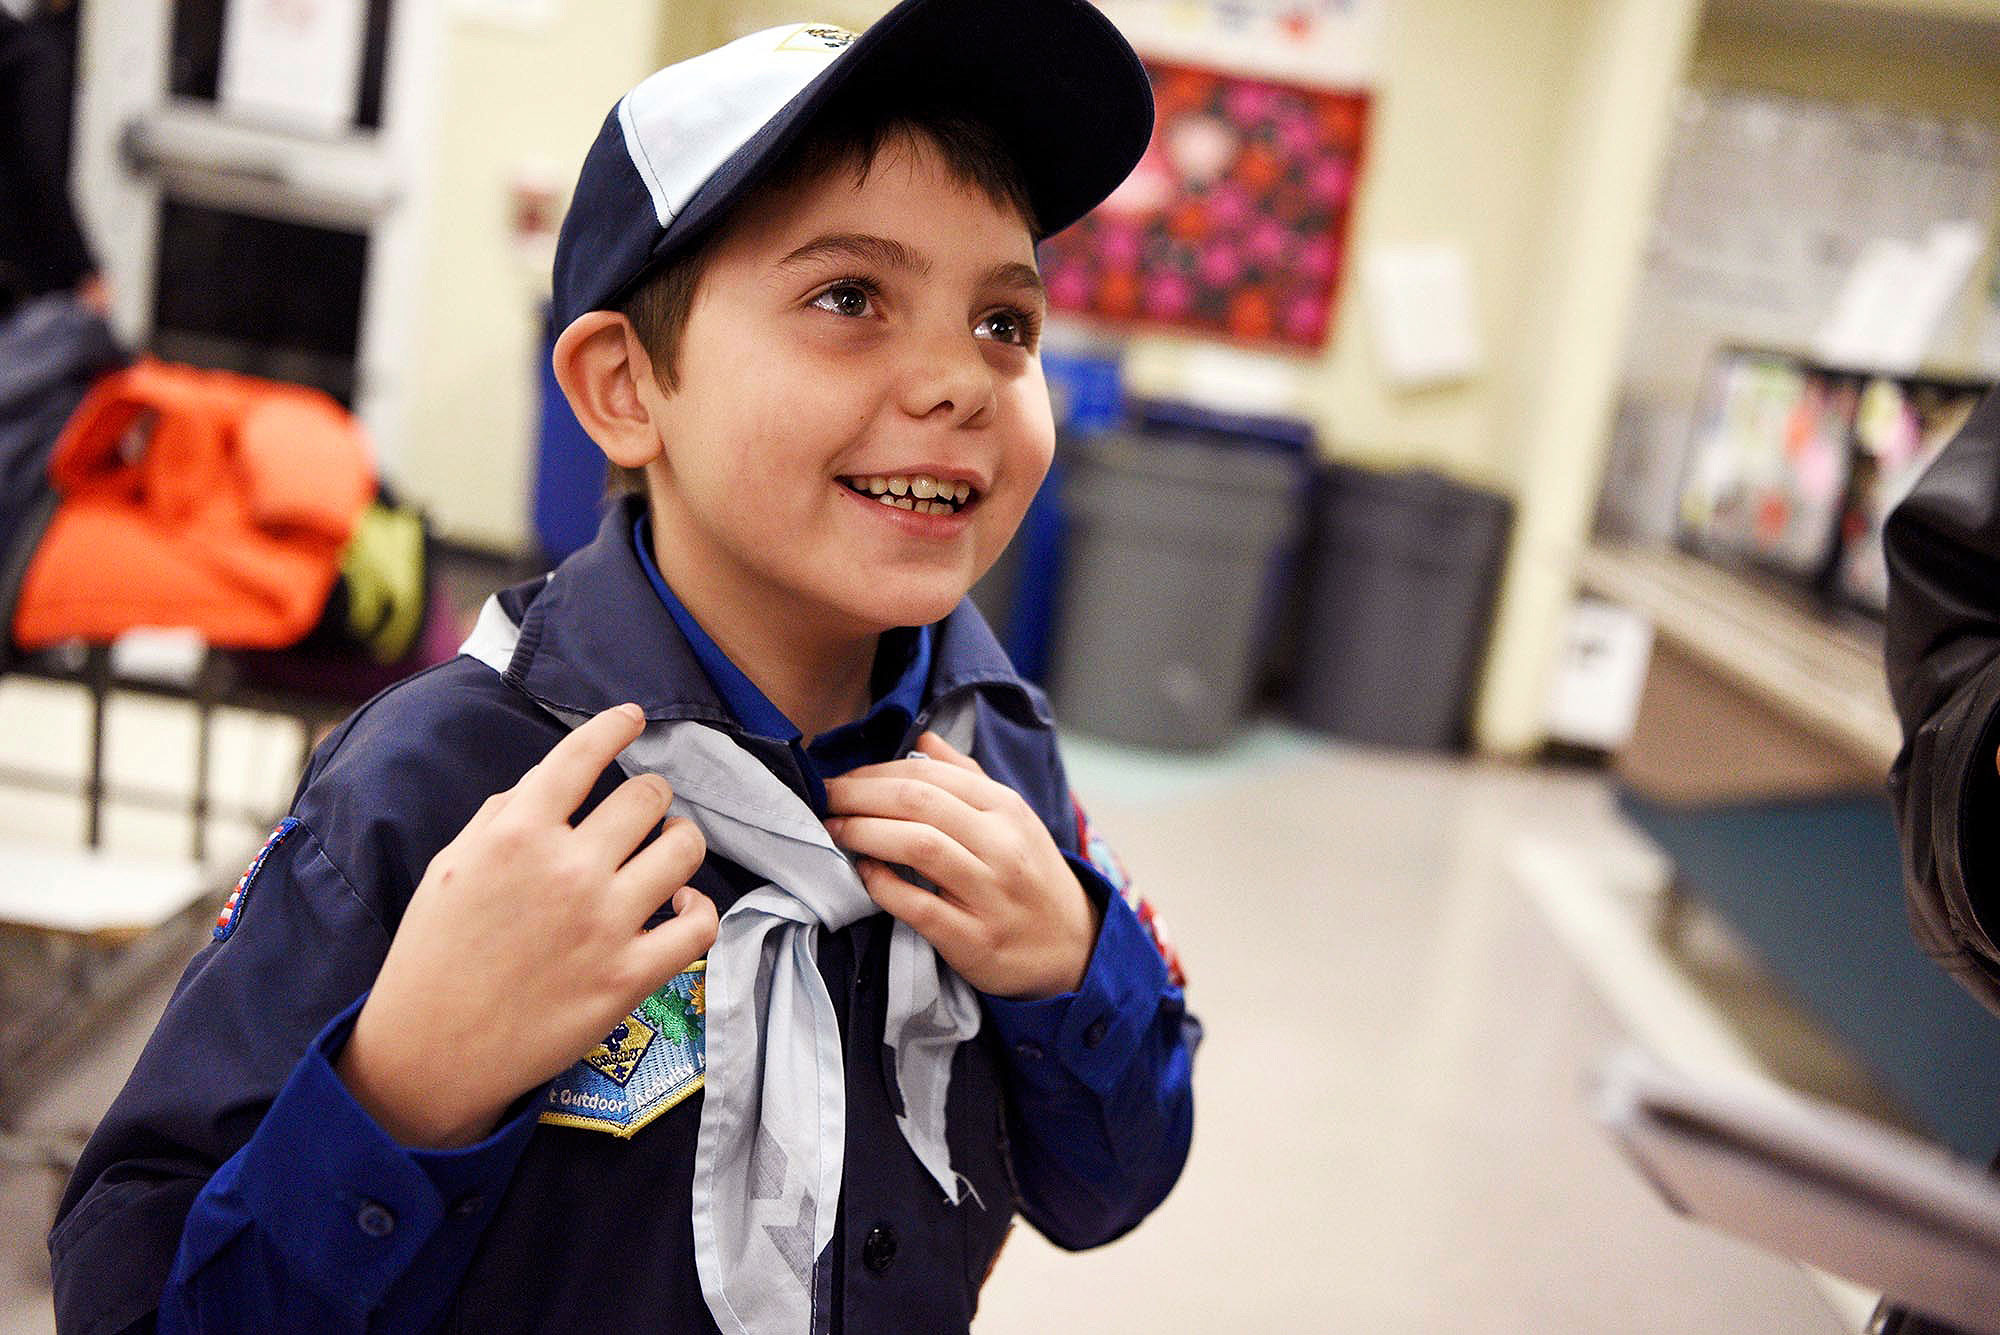 """In this Feb. 7, 2017 photo, Joe Maldonado, the first openly transgender member of the Boy Scouts, shows off the uniform he received from Scout leader Kyle Hackler to wear to his first meeting in Maplewood, N.J. Boy Scouts of America recently changed its policy to allow transgender children to join the organization. """"I am accepted,"""" Maldonado said as he put on the uniform. (Amy Newman/The Record via AP)"""